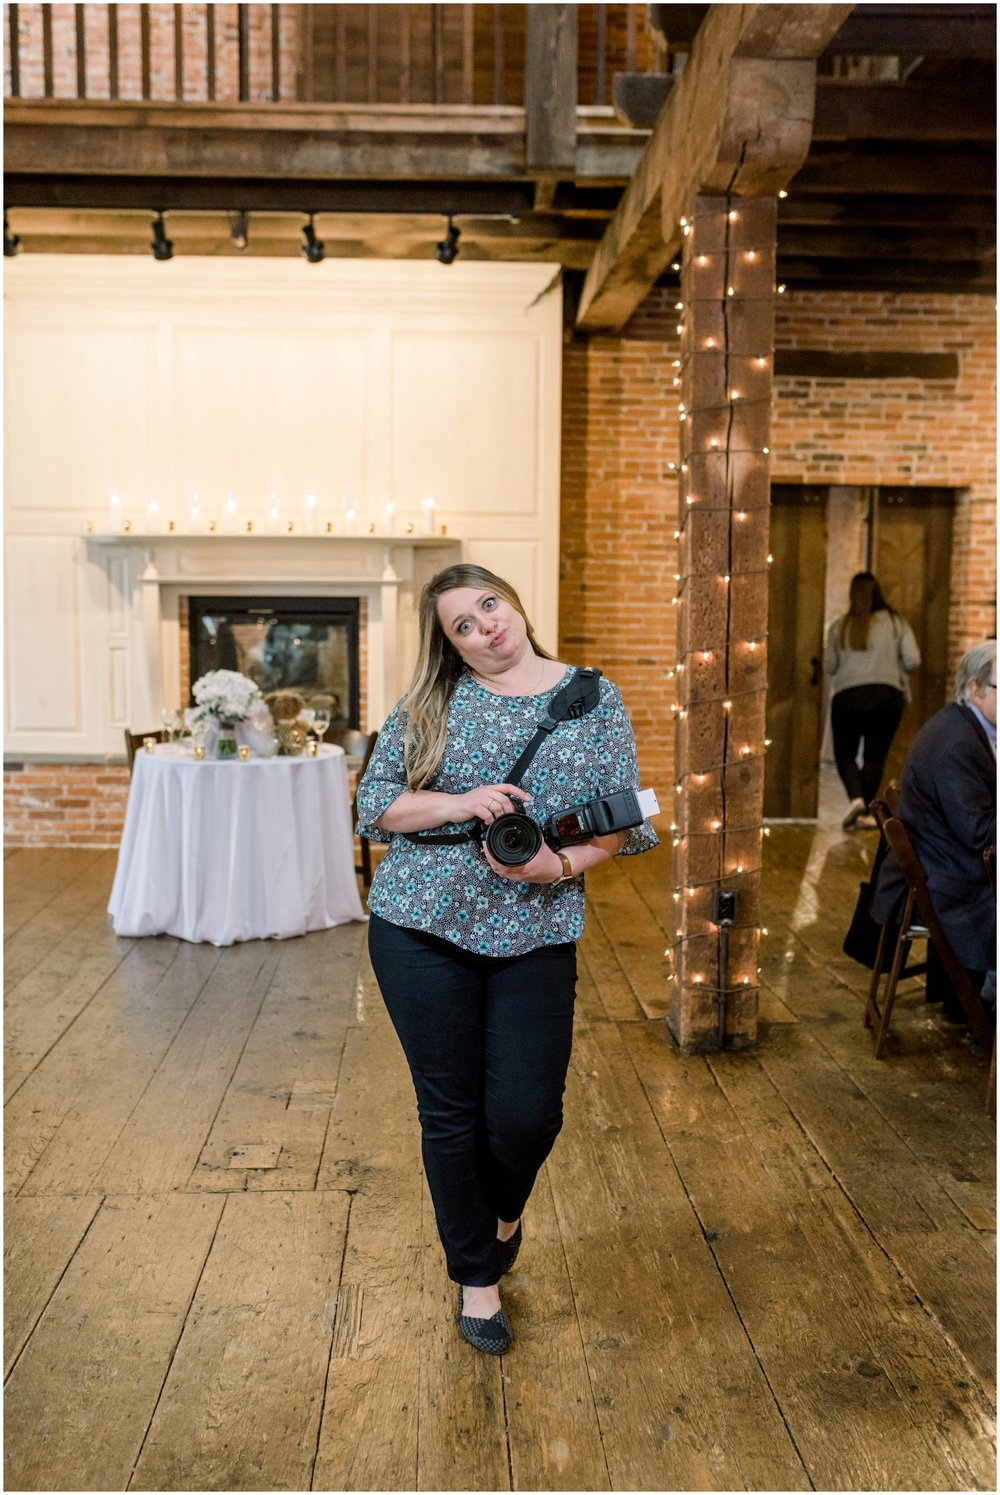 Krista Brackin Photography Behind The Scenes 2018 - Krista Brackin Photography_0068.jpg